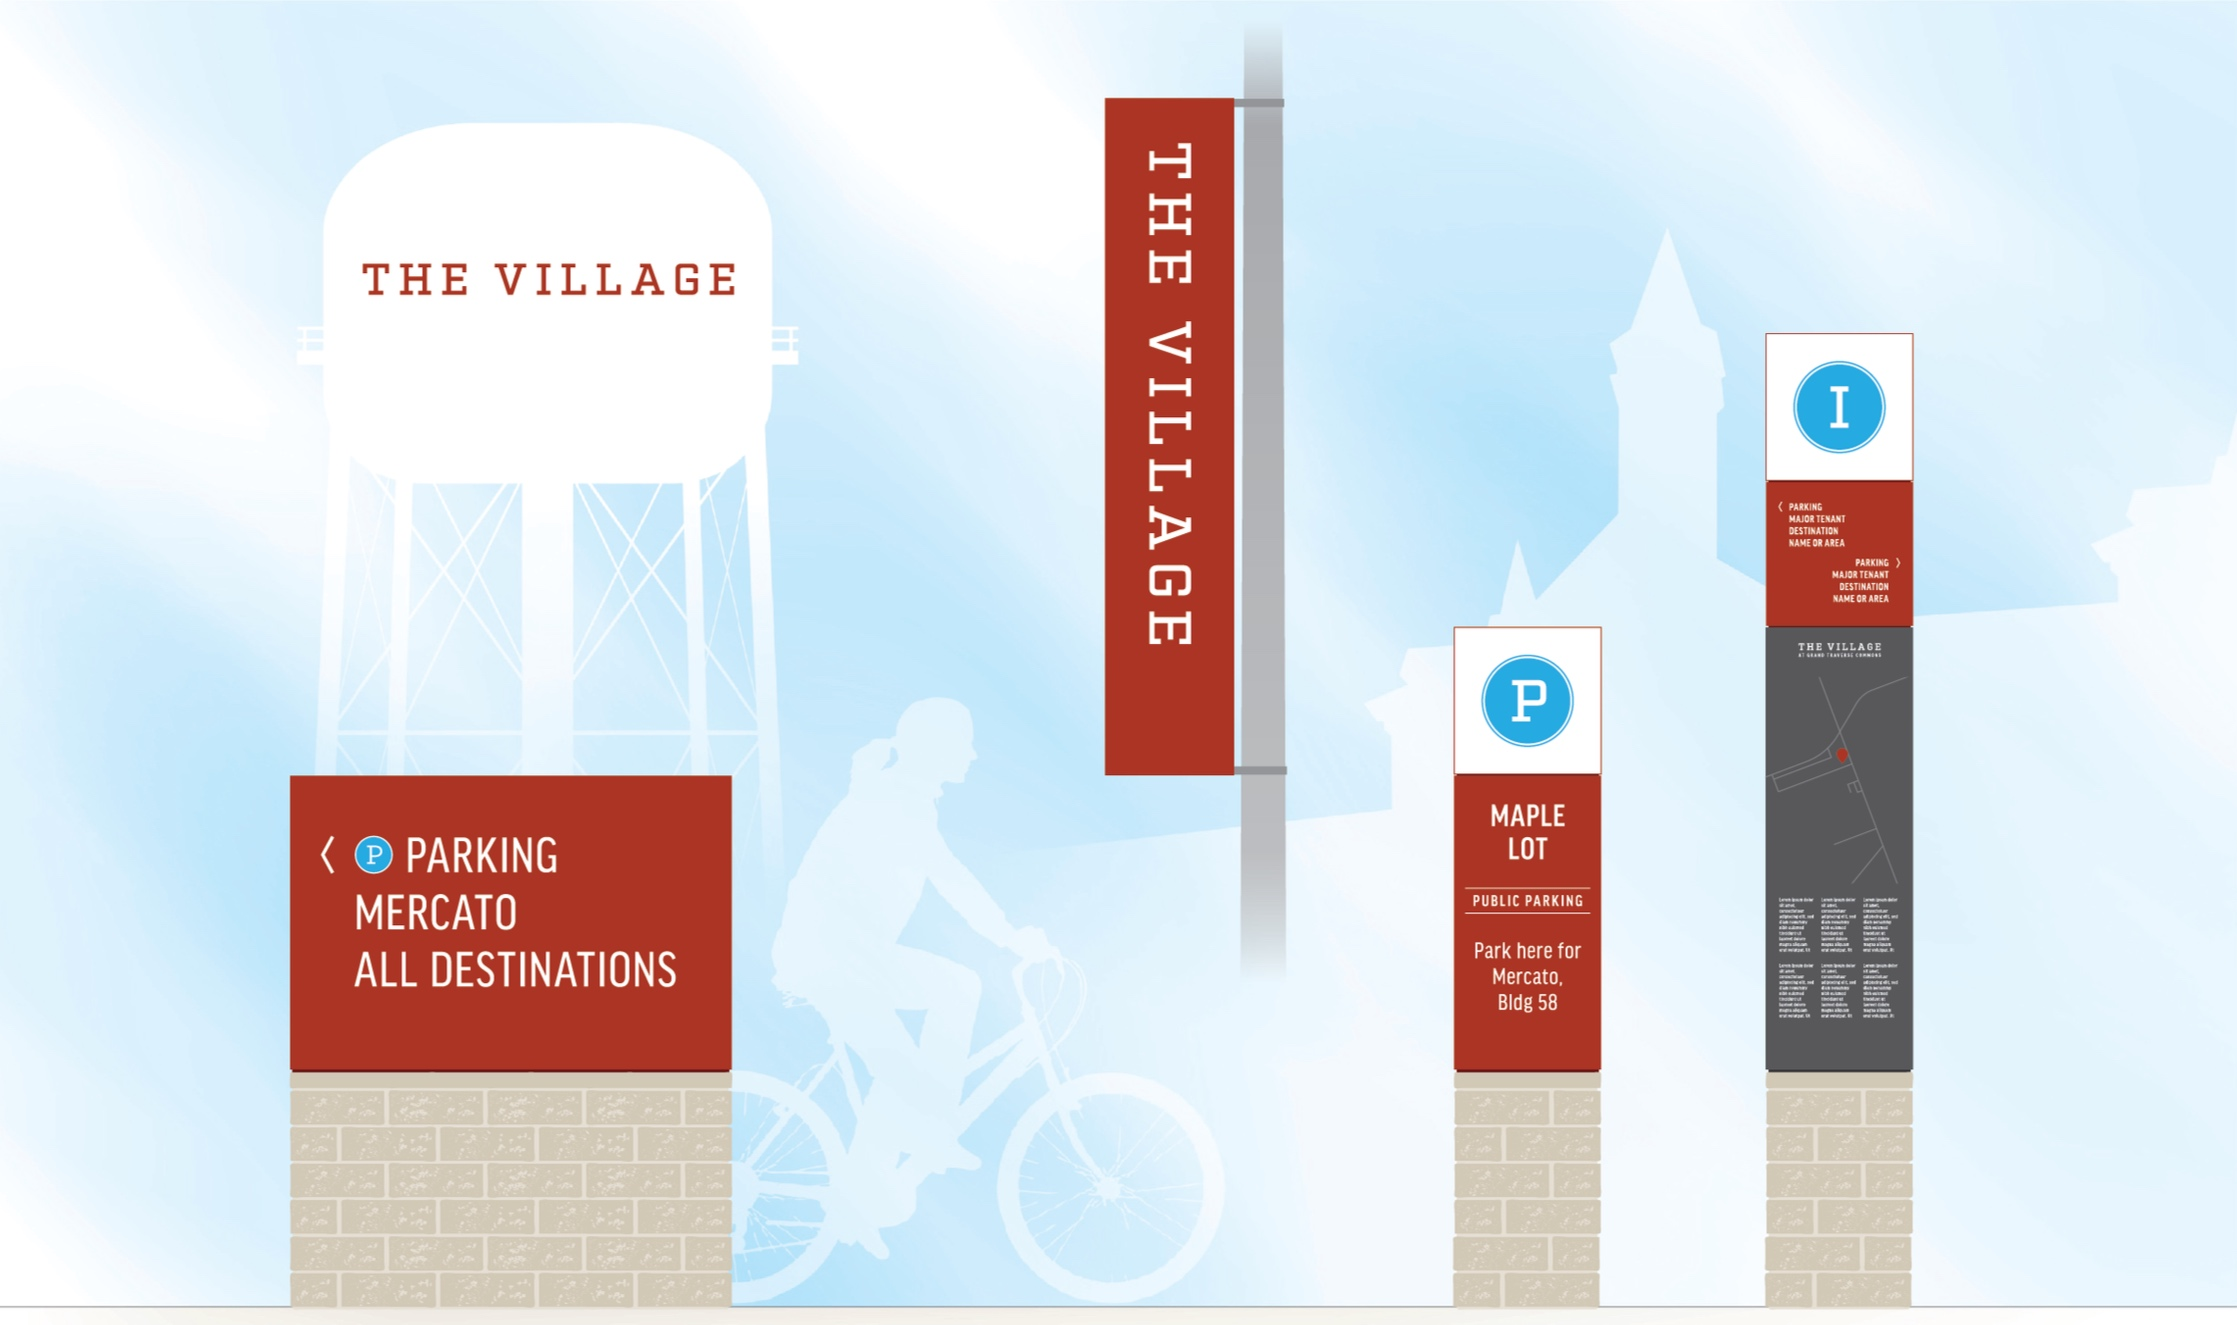 TheVillage_Concepts-01.jpg